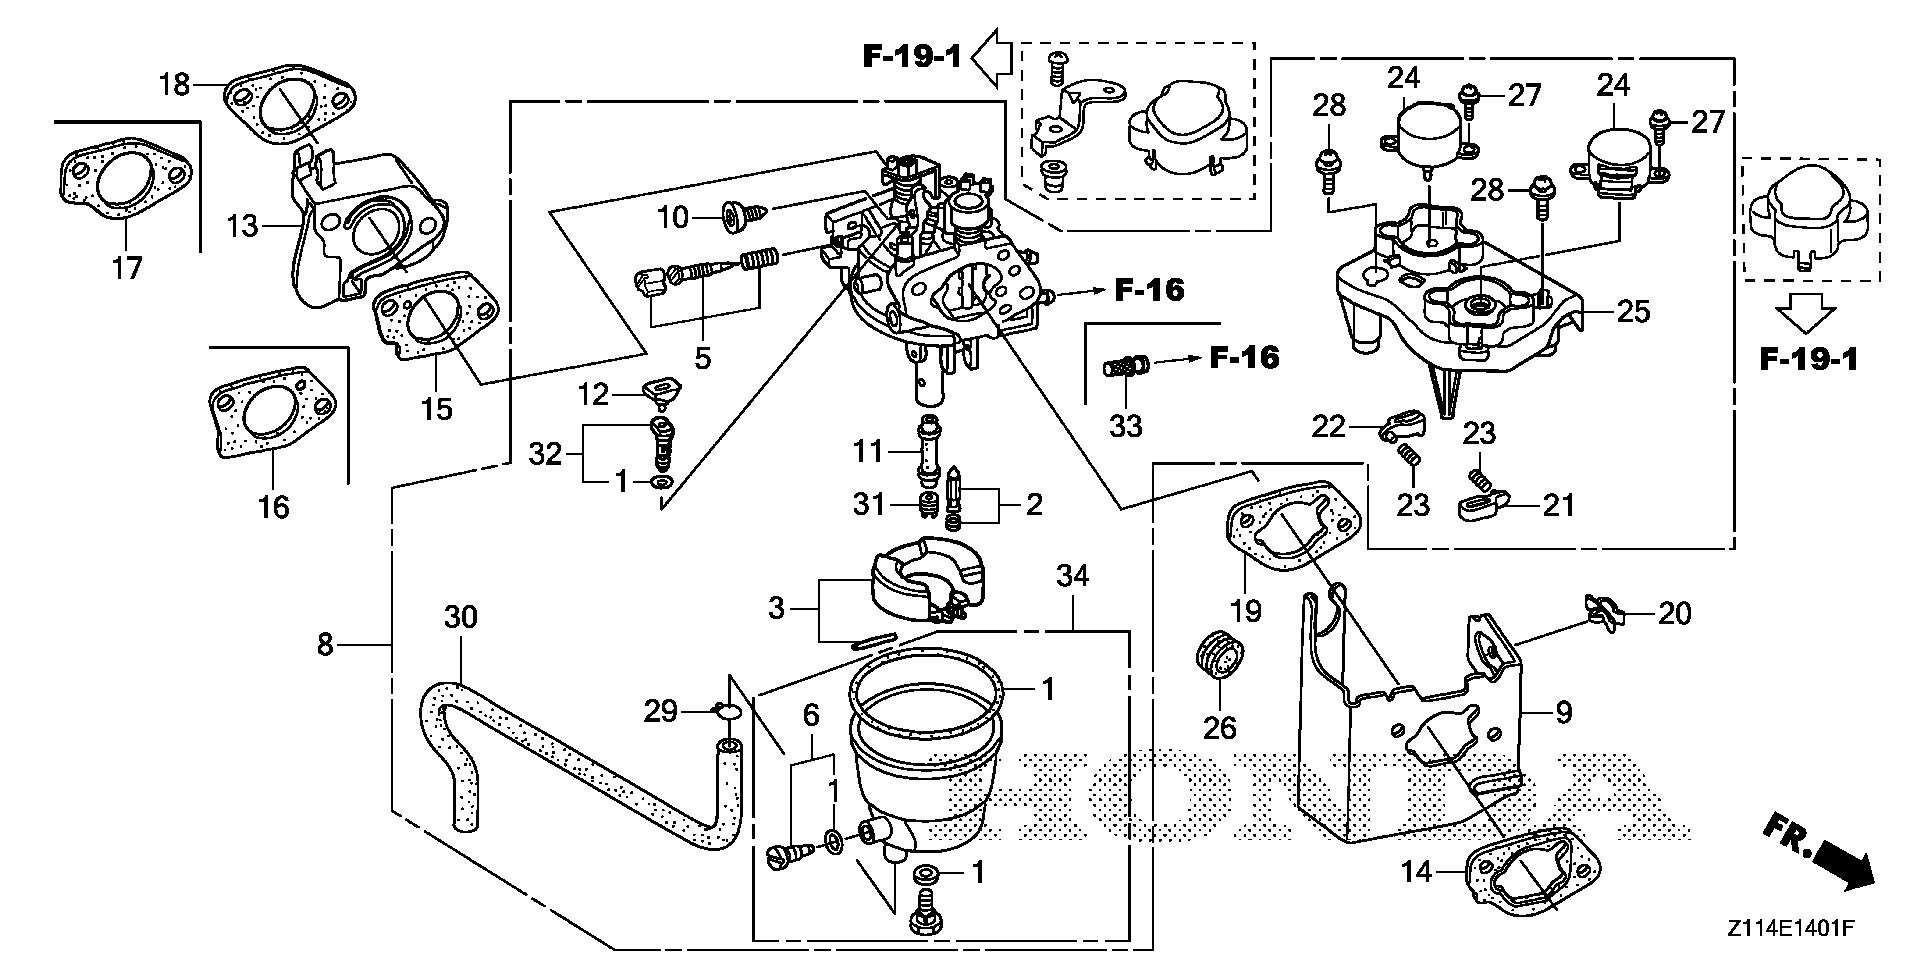 CARBURETOR               (EM5000IS/5000IS1/7000IS)